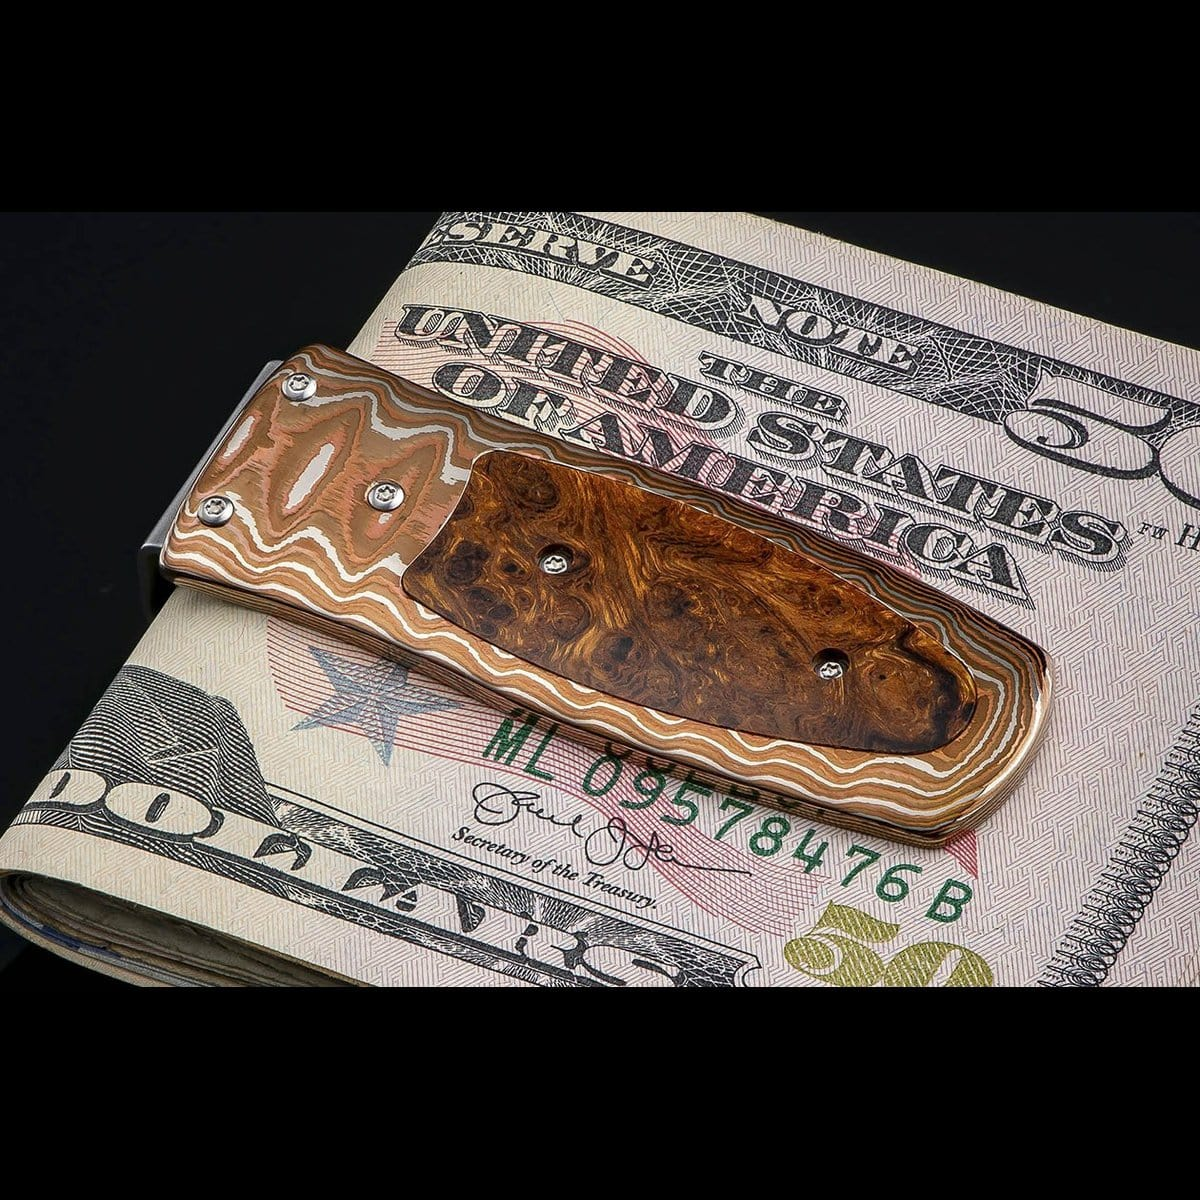 Pharaoh Taos Limited Edition Money Clip - M4 TAOS-William Henry-Renee Taylor Gallery